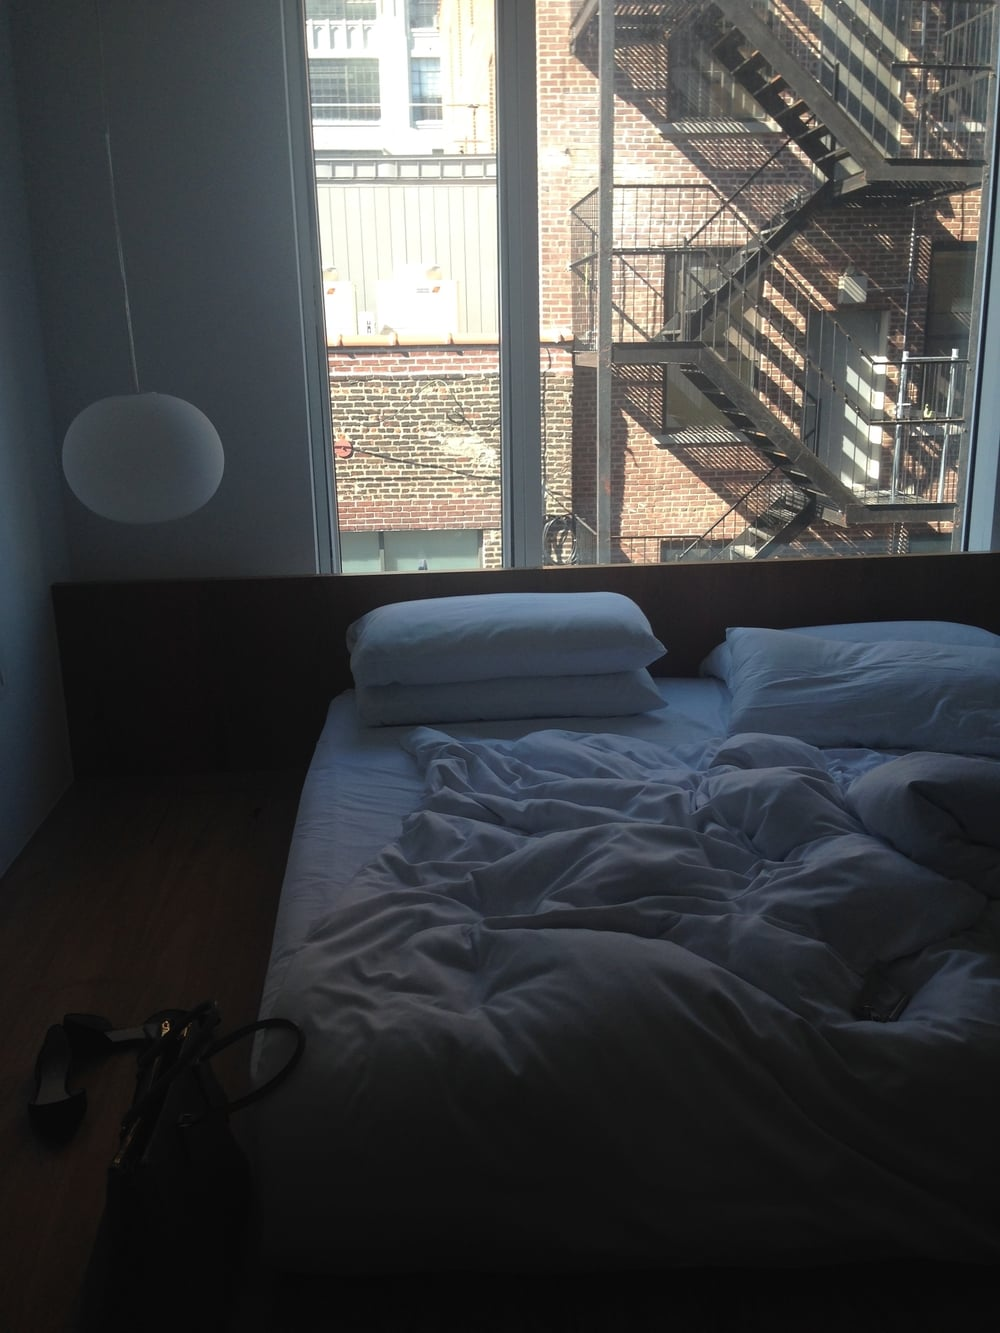 Waking up in NYC, Hotel Americano